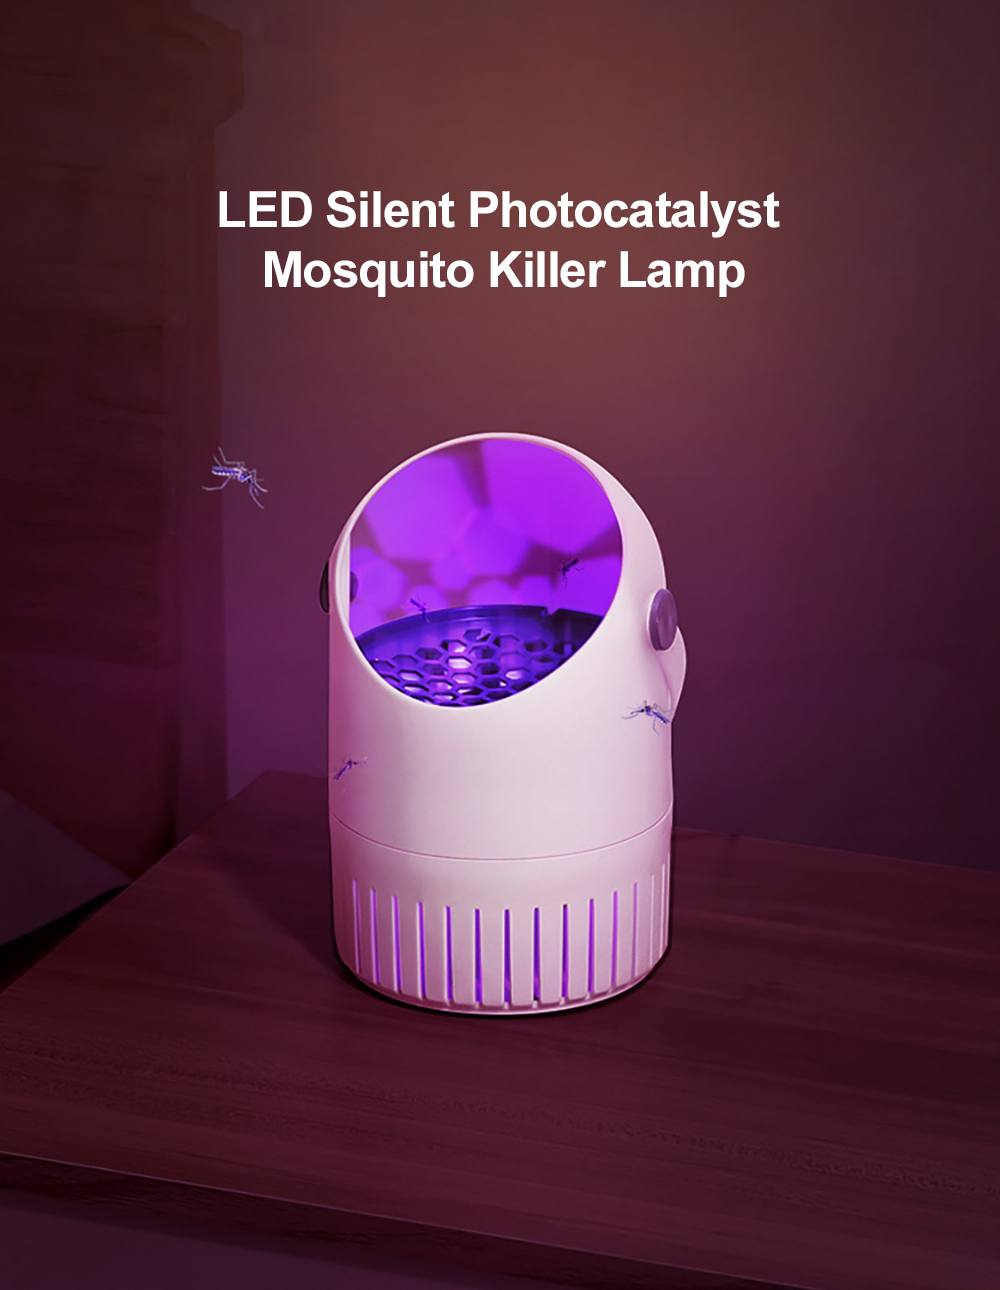 JY-888 Mosquito Repellent Light USB Power Supply LED Mute Photocatalyst Mosquito Killer Lamp - Black Not Wall-mounted